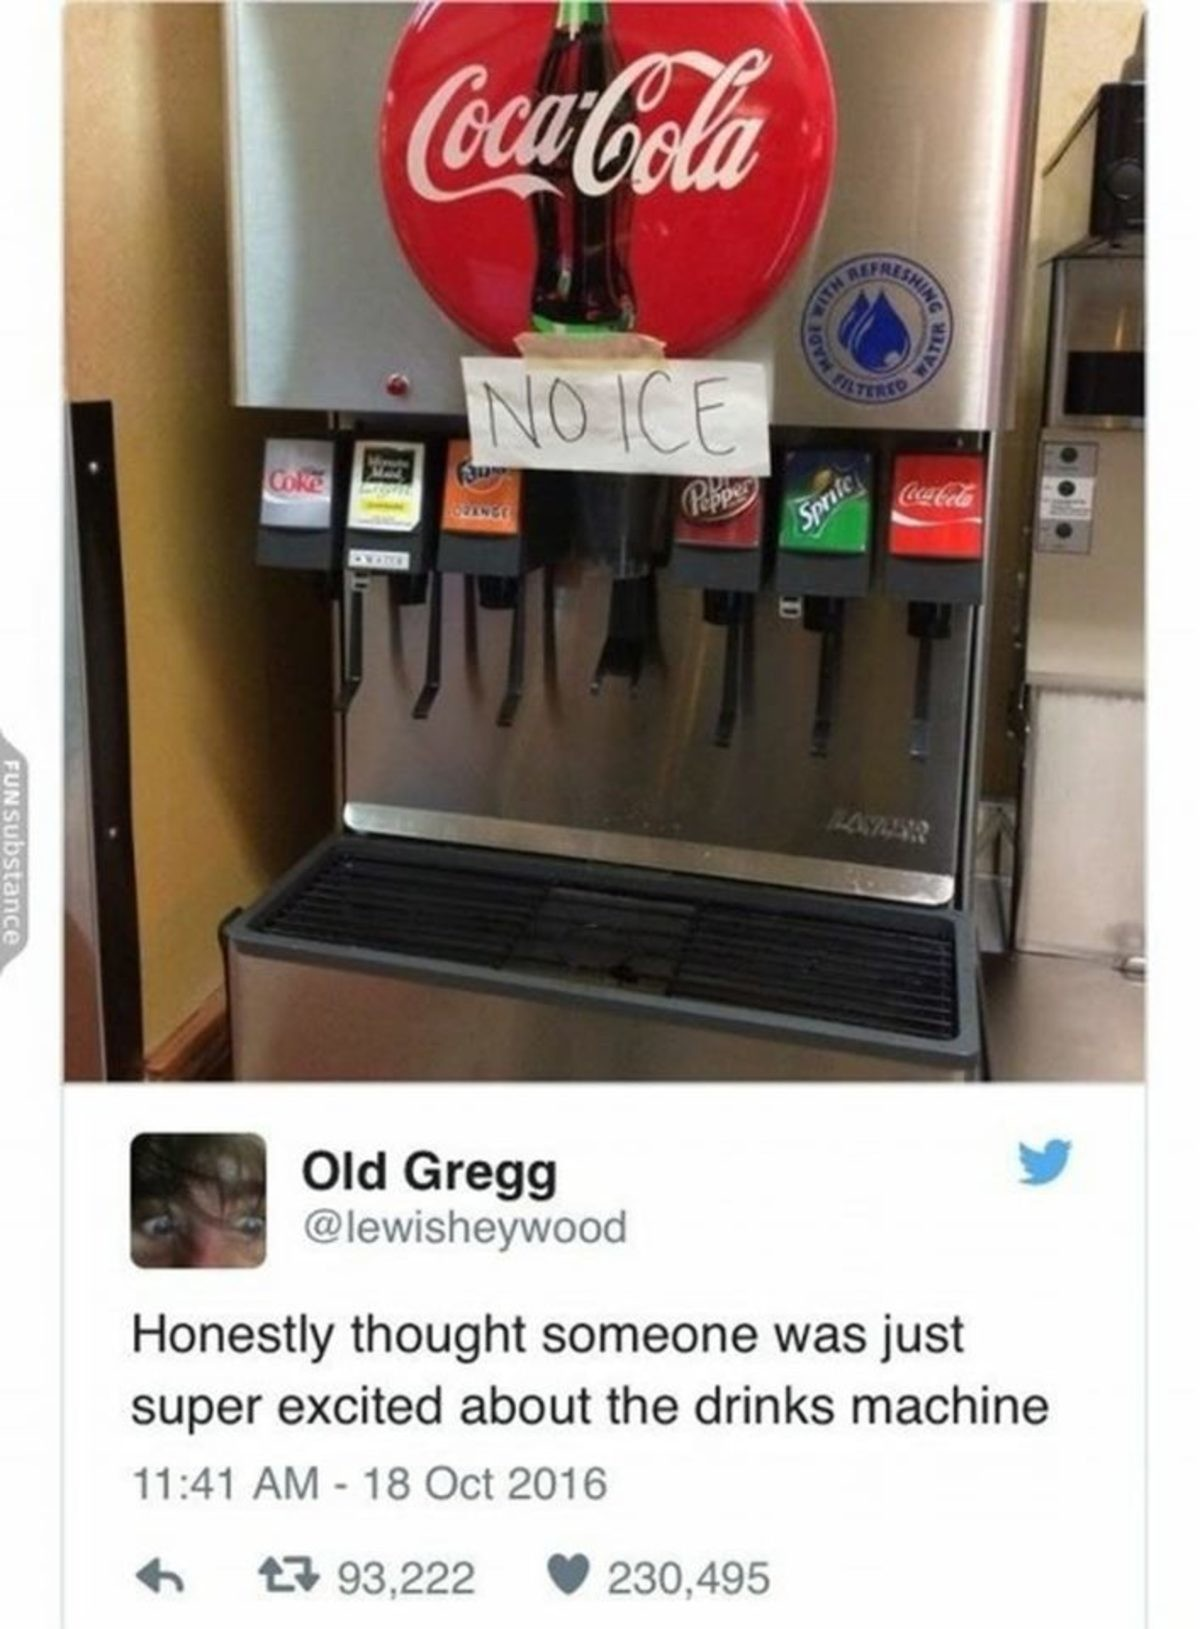 Noice.. .. I don't think soda fountains should express their personal political opinions